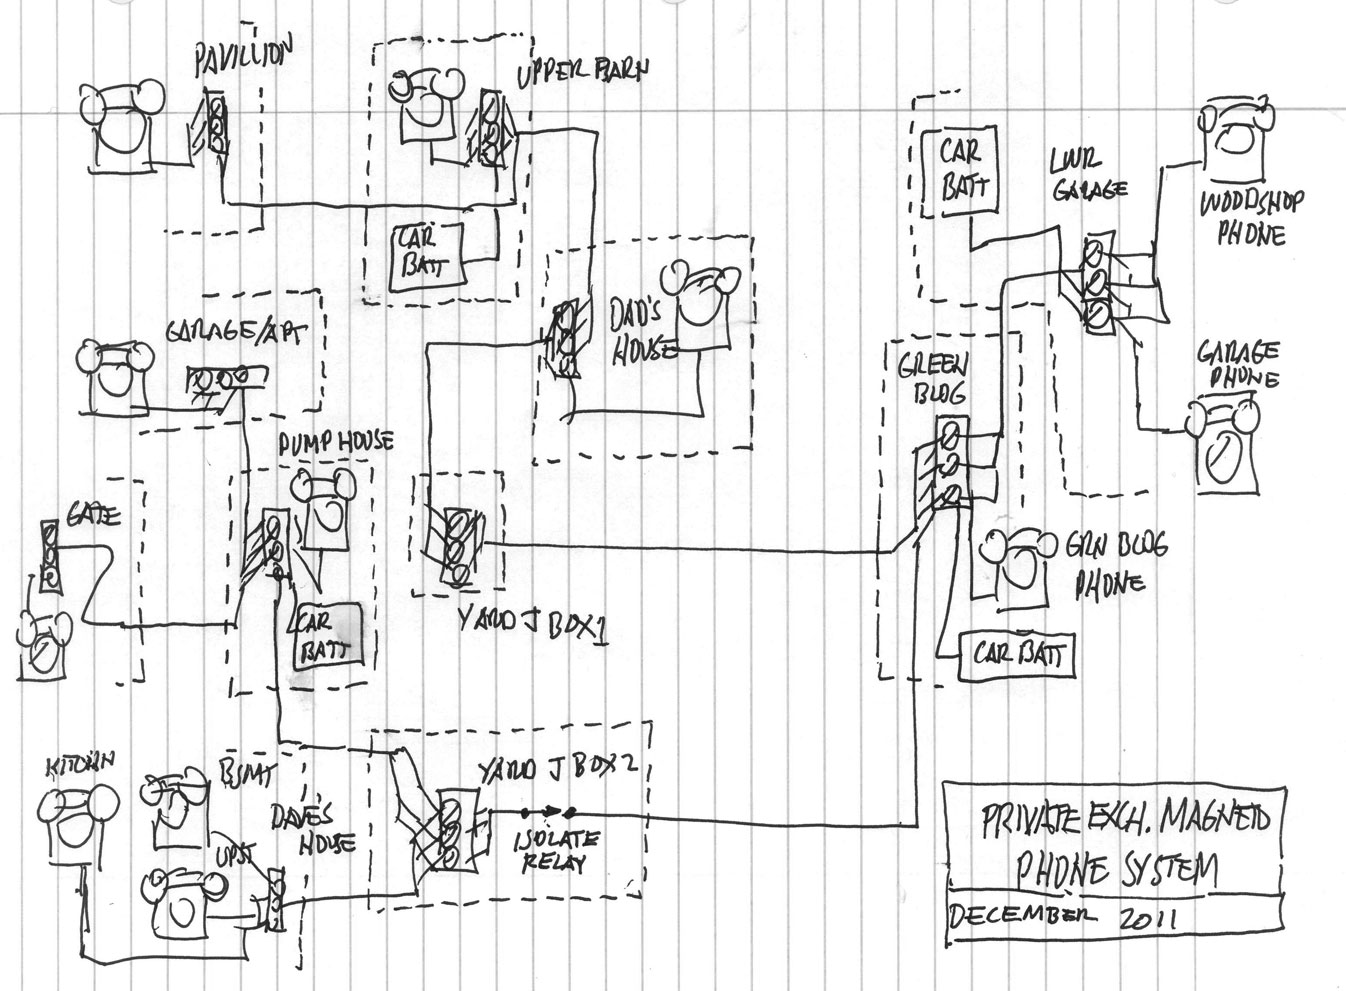 phonesysdiag leich phone Residential Telephone Wiring Diagram at bakdesigns.co